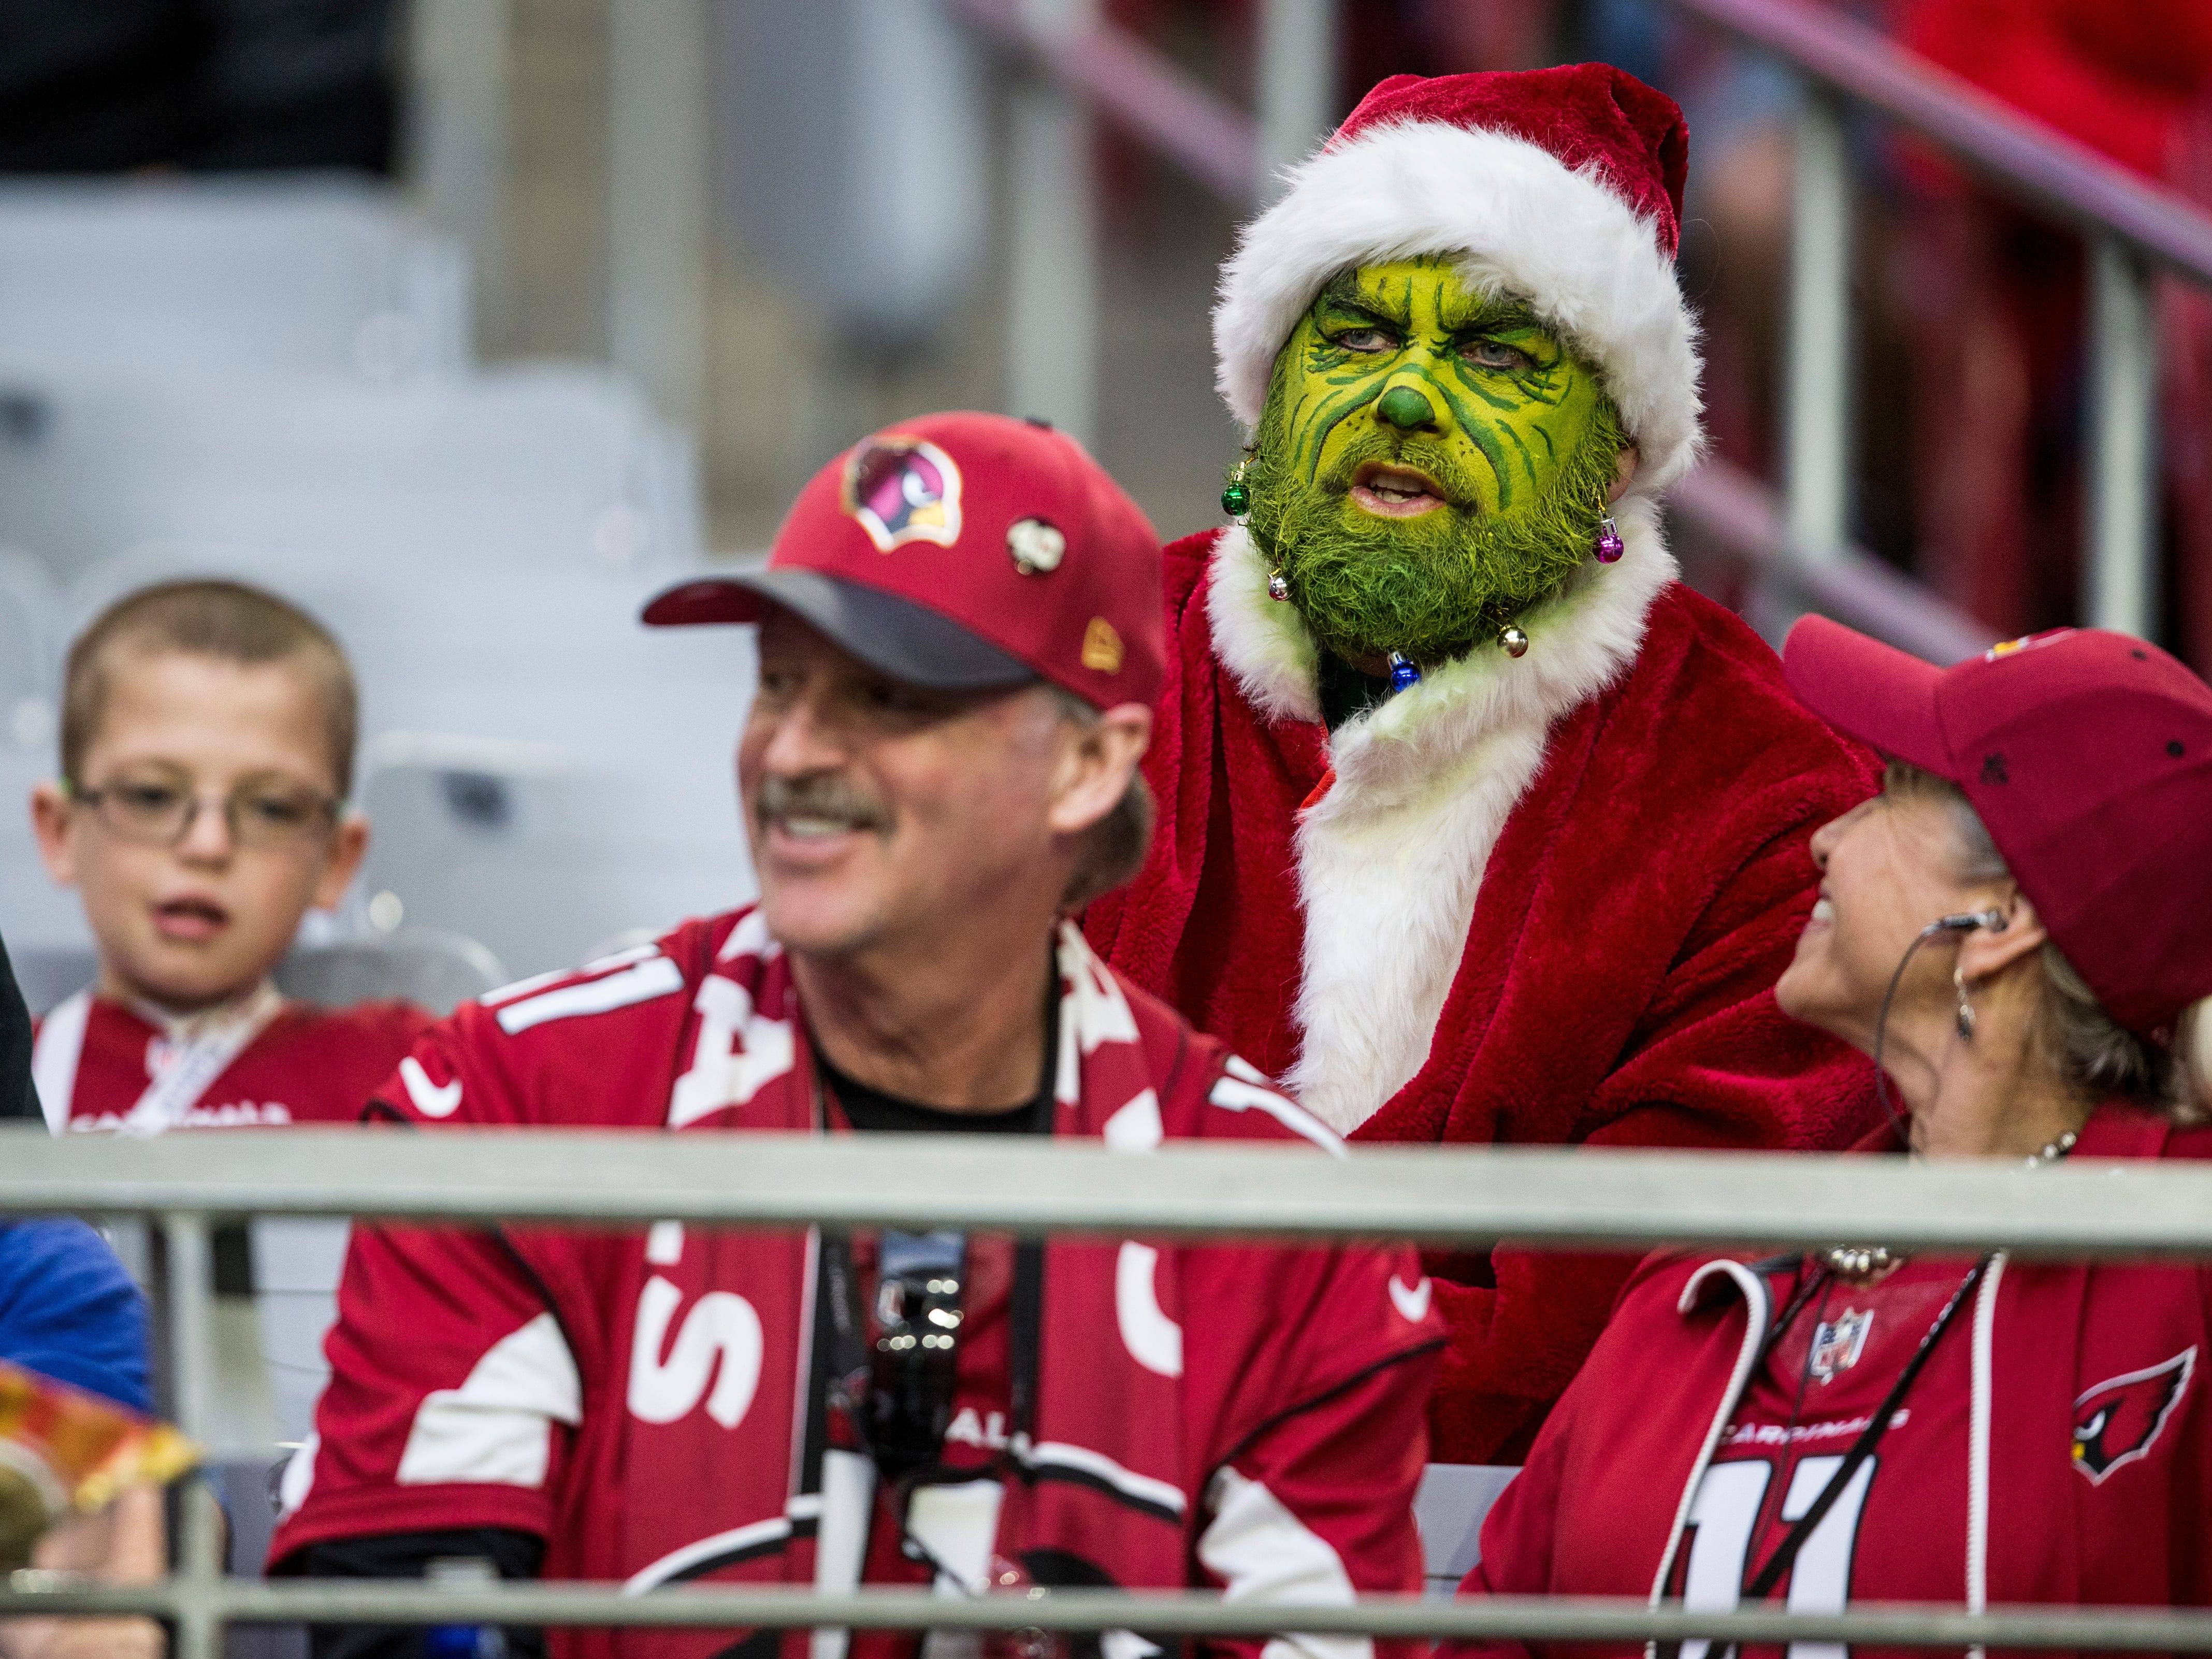 Cardinals fans watch the game against the Rams in the 2nd half on Sunday, Dec. 23, 2018, at State Farm Stadium in Glendale, Ariz.